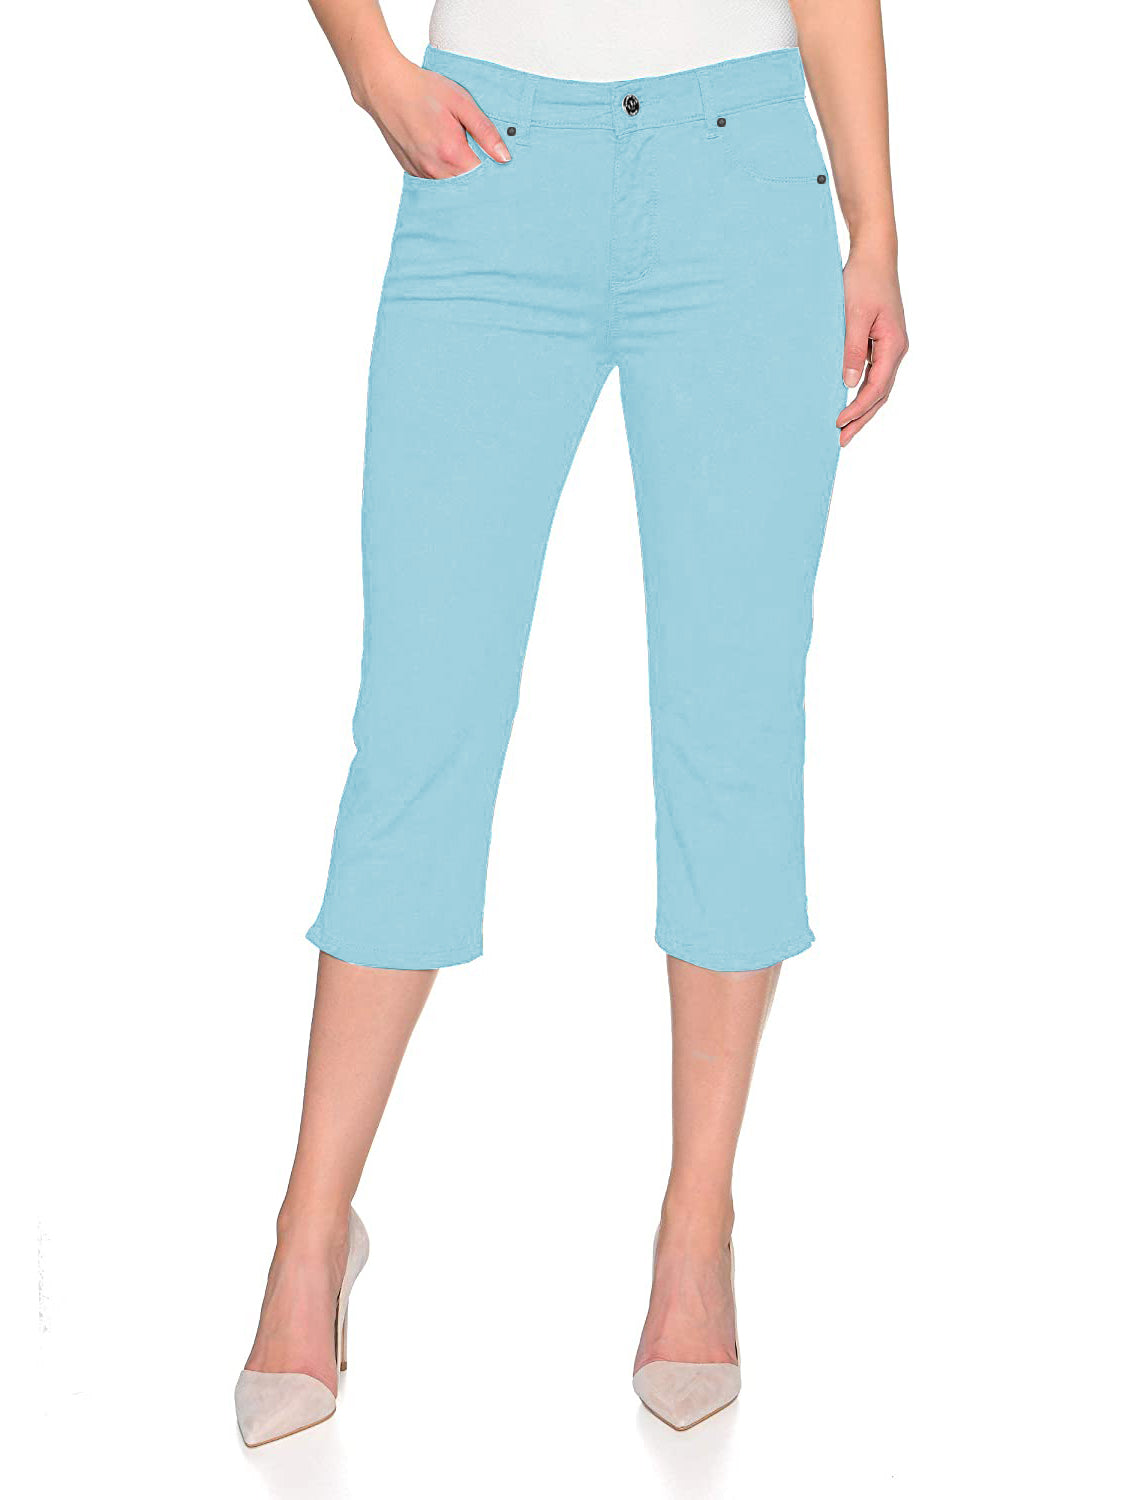 Springfield Slim Fit Stretch Capri For Ladies-Light Blue-F173